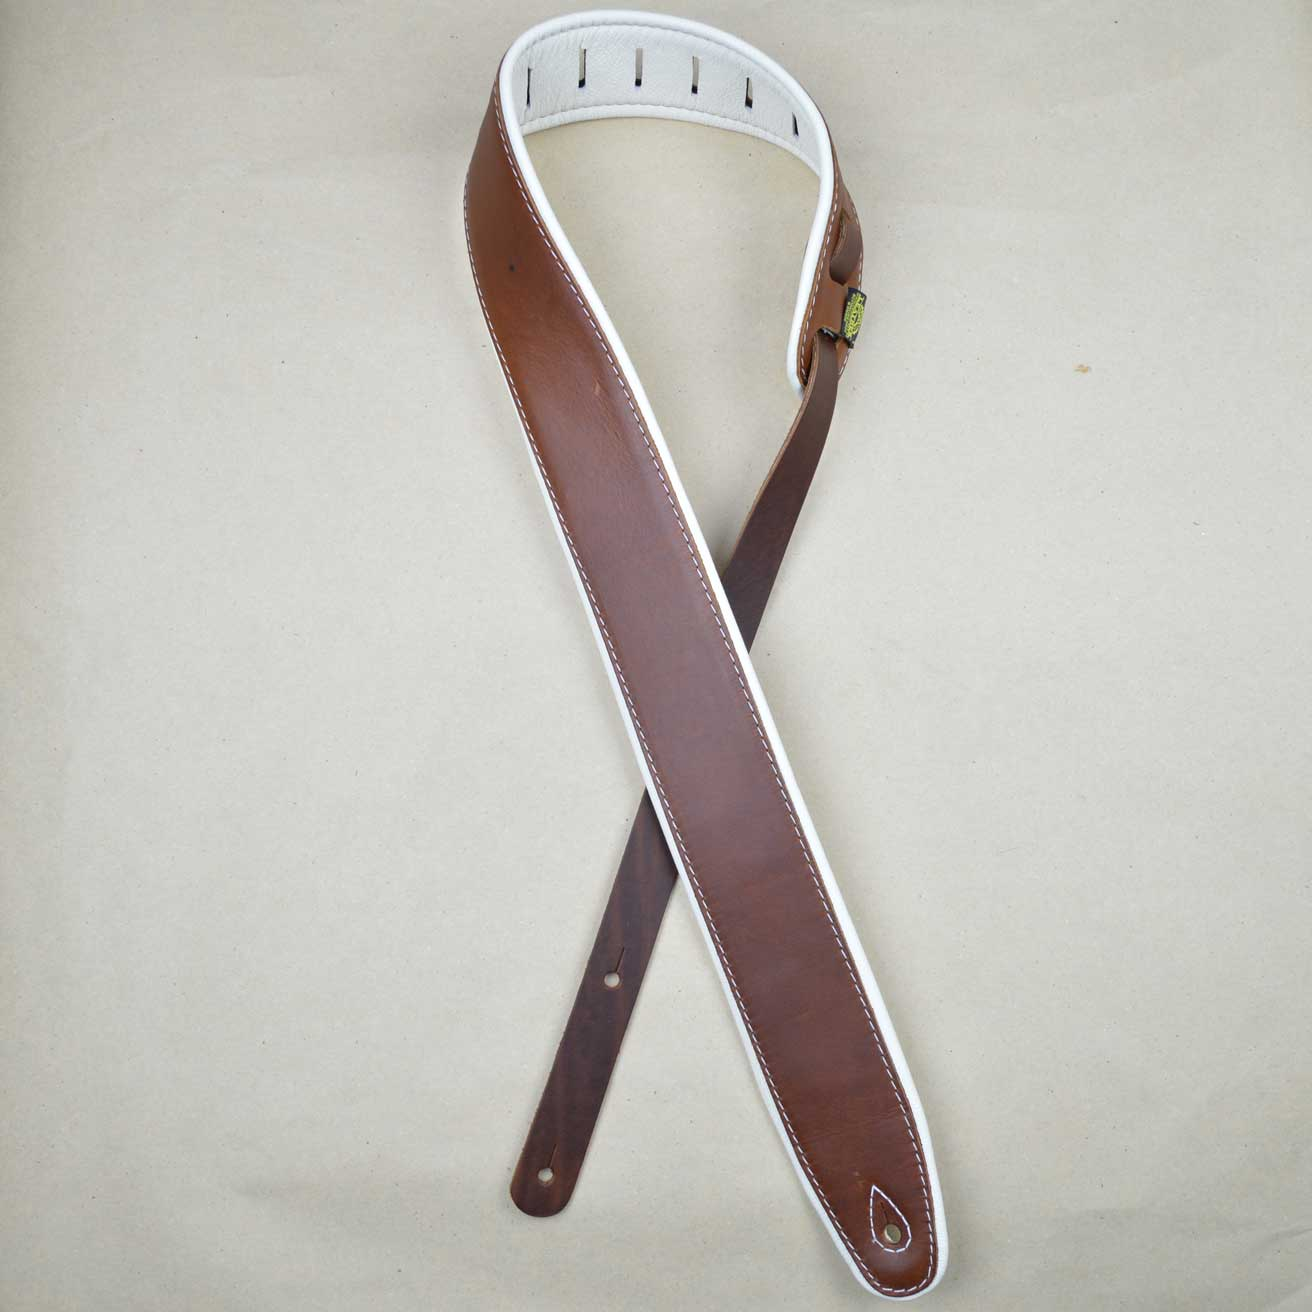 padded upholstery leather guitar strap brown white. Black Bedroom Furniture Sets. Home Design Ideas